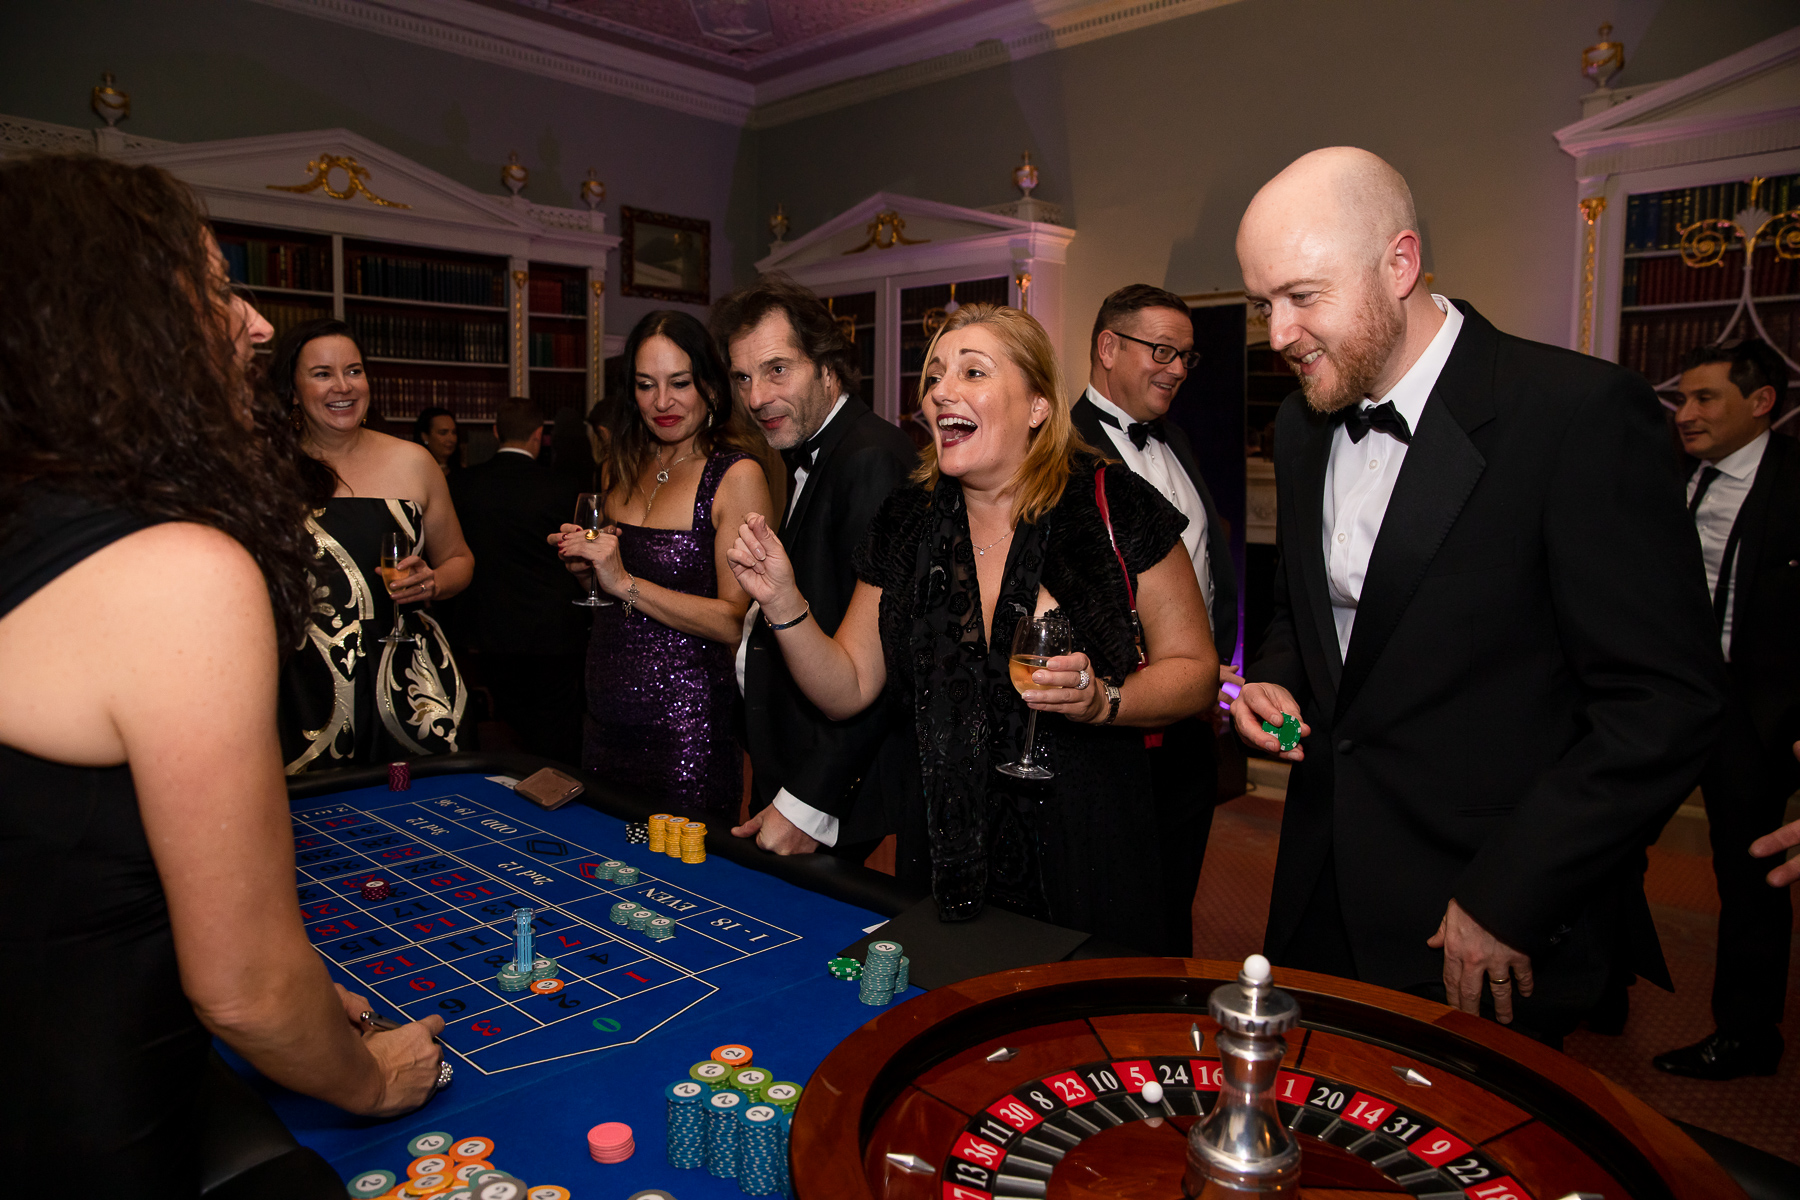 Brocket-Hall-007-event-casino-royale